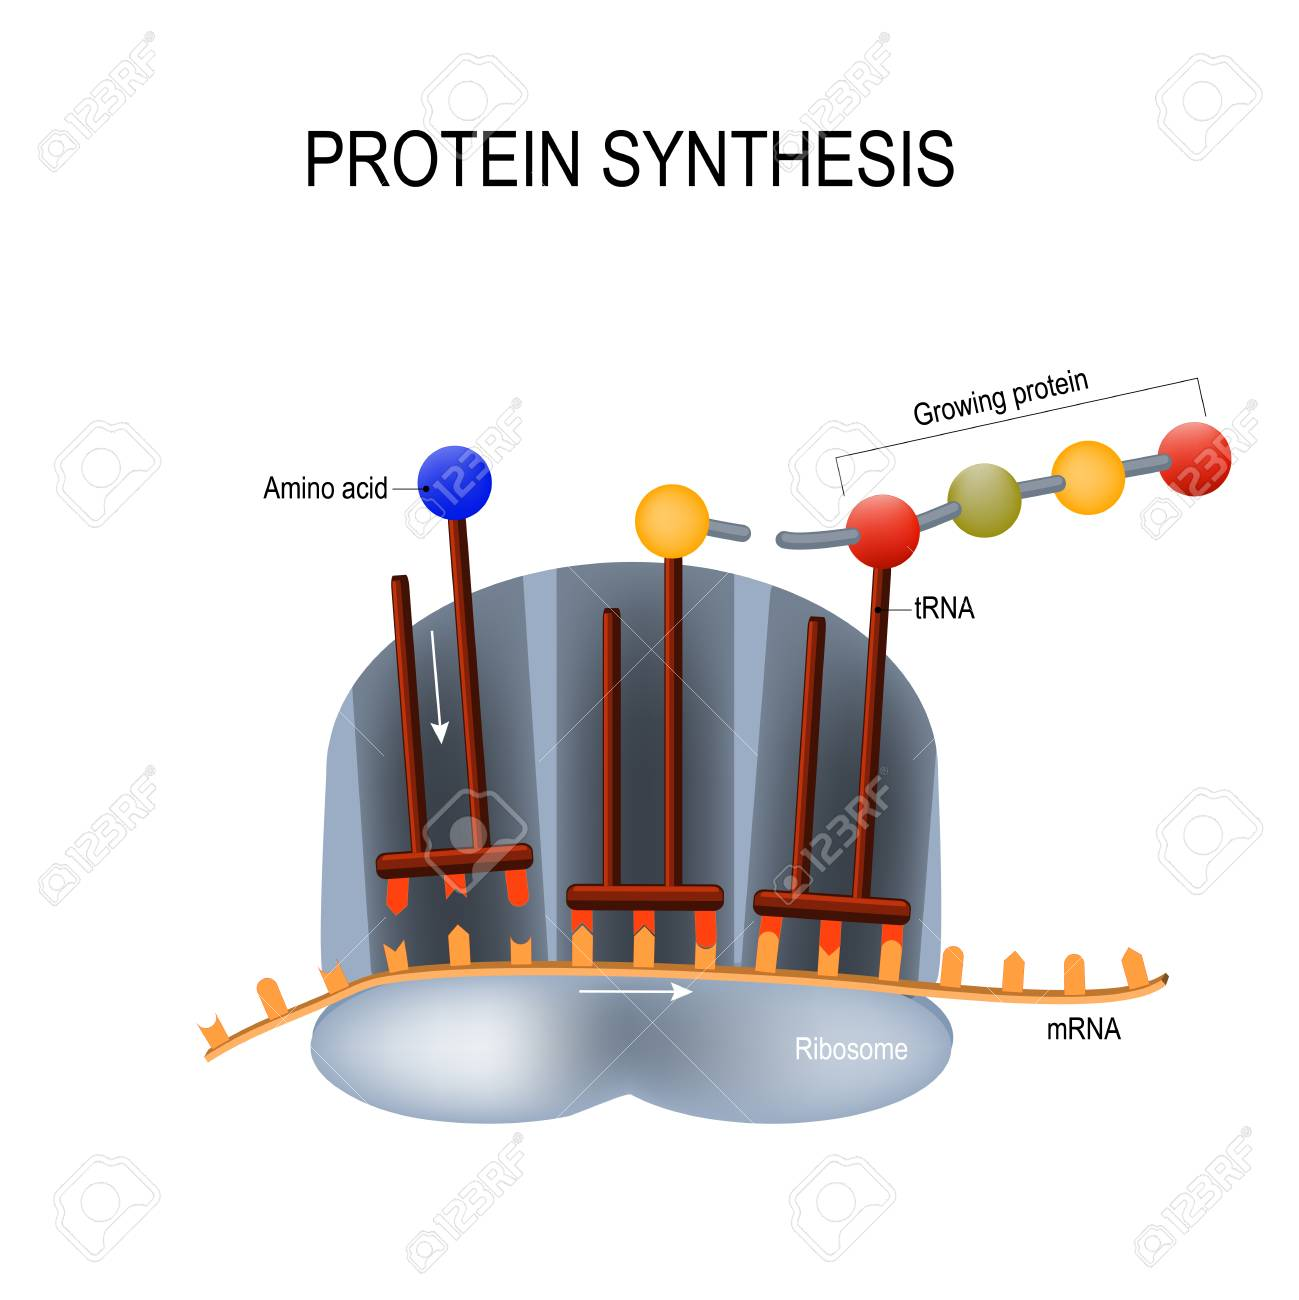 Protein Synthesis illustration